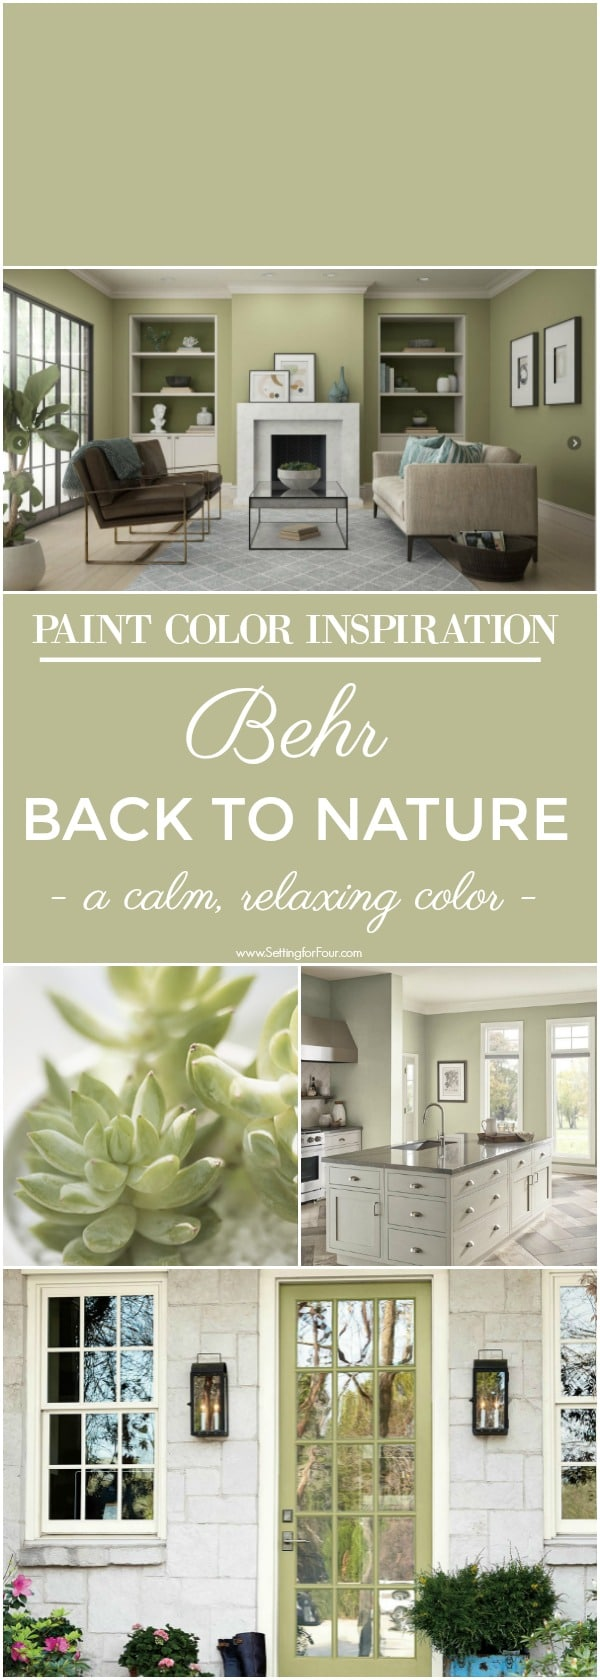 Behr Back To Nature Paint Color Color Of The Year 2020 Setting For Four